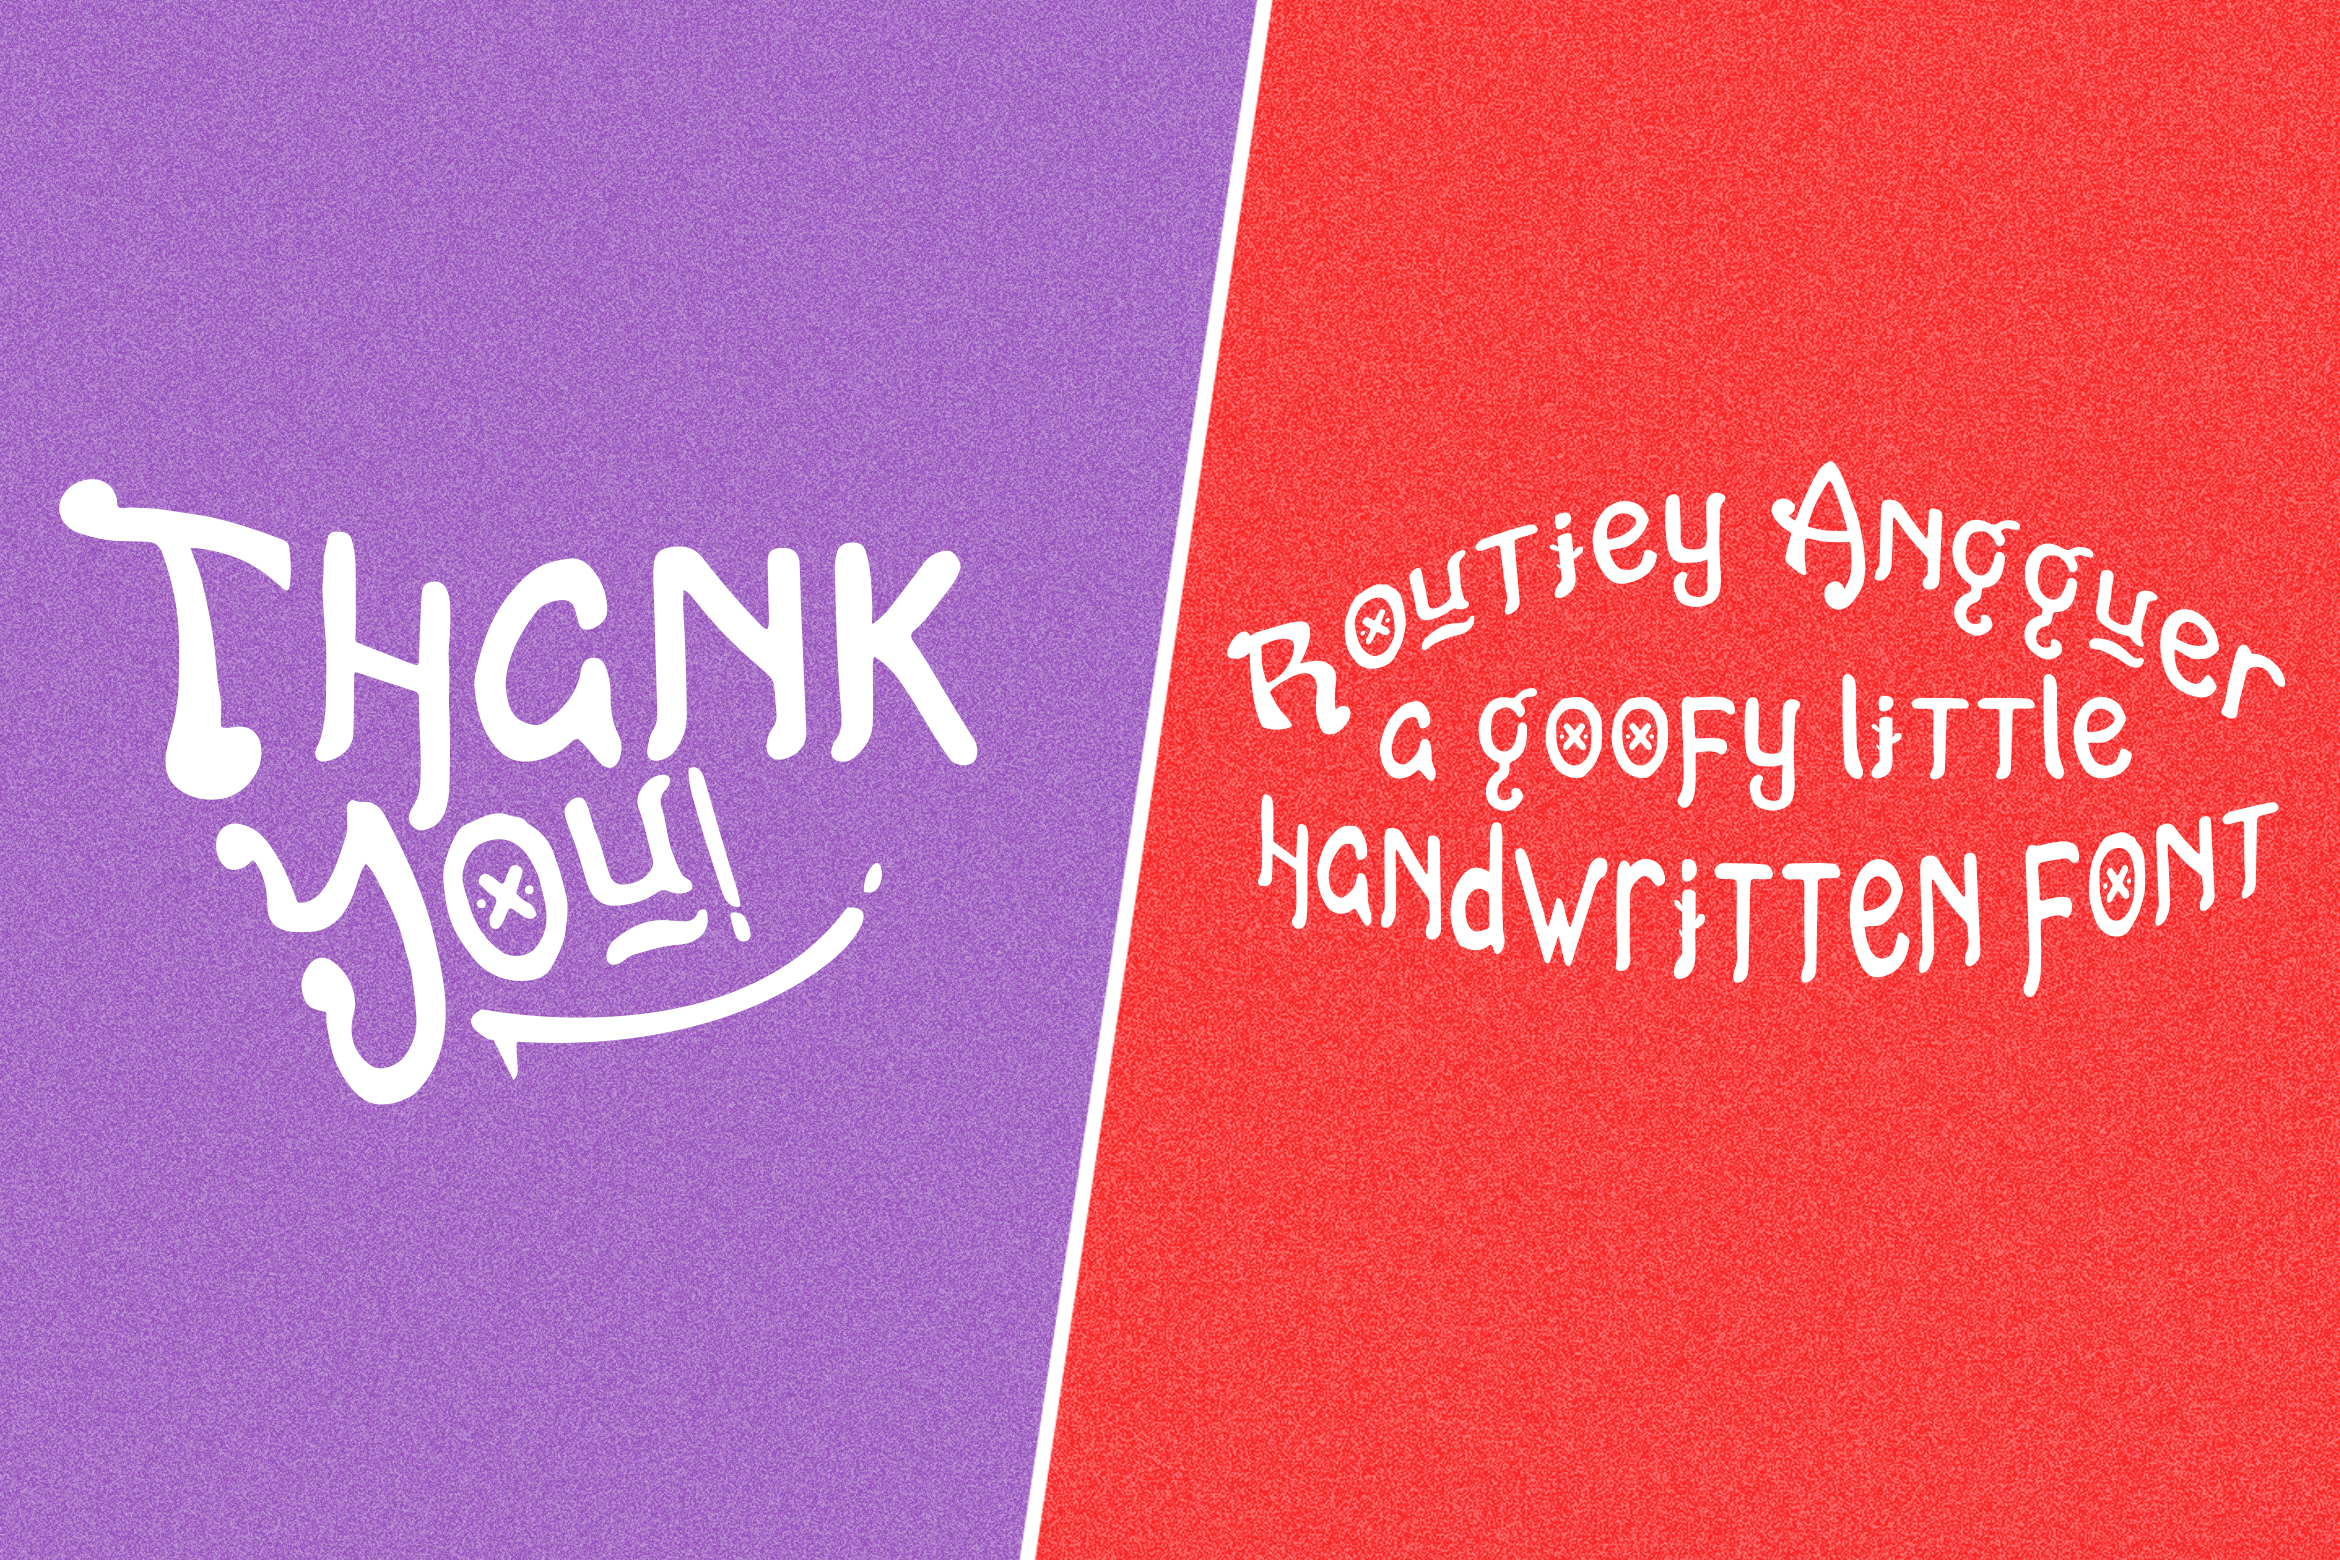 Routiey Angguer - Handwritten Font example image 5